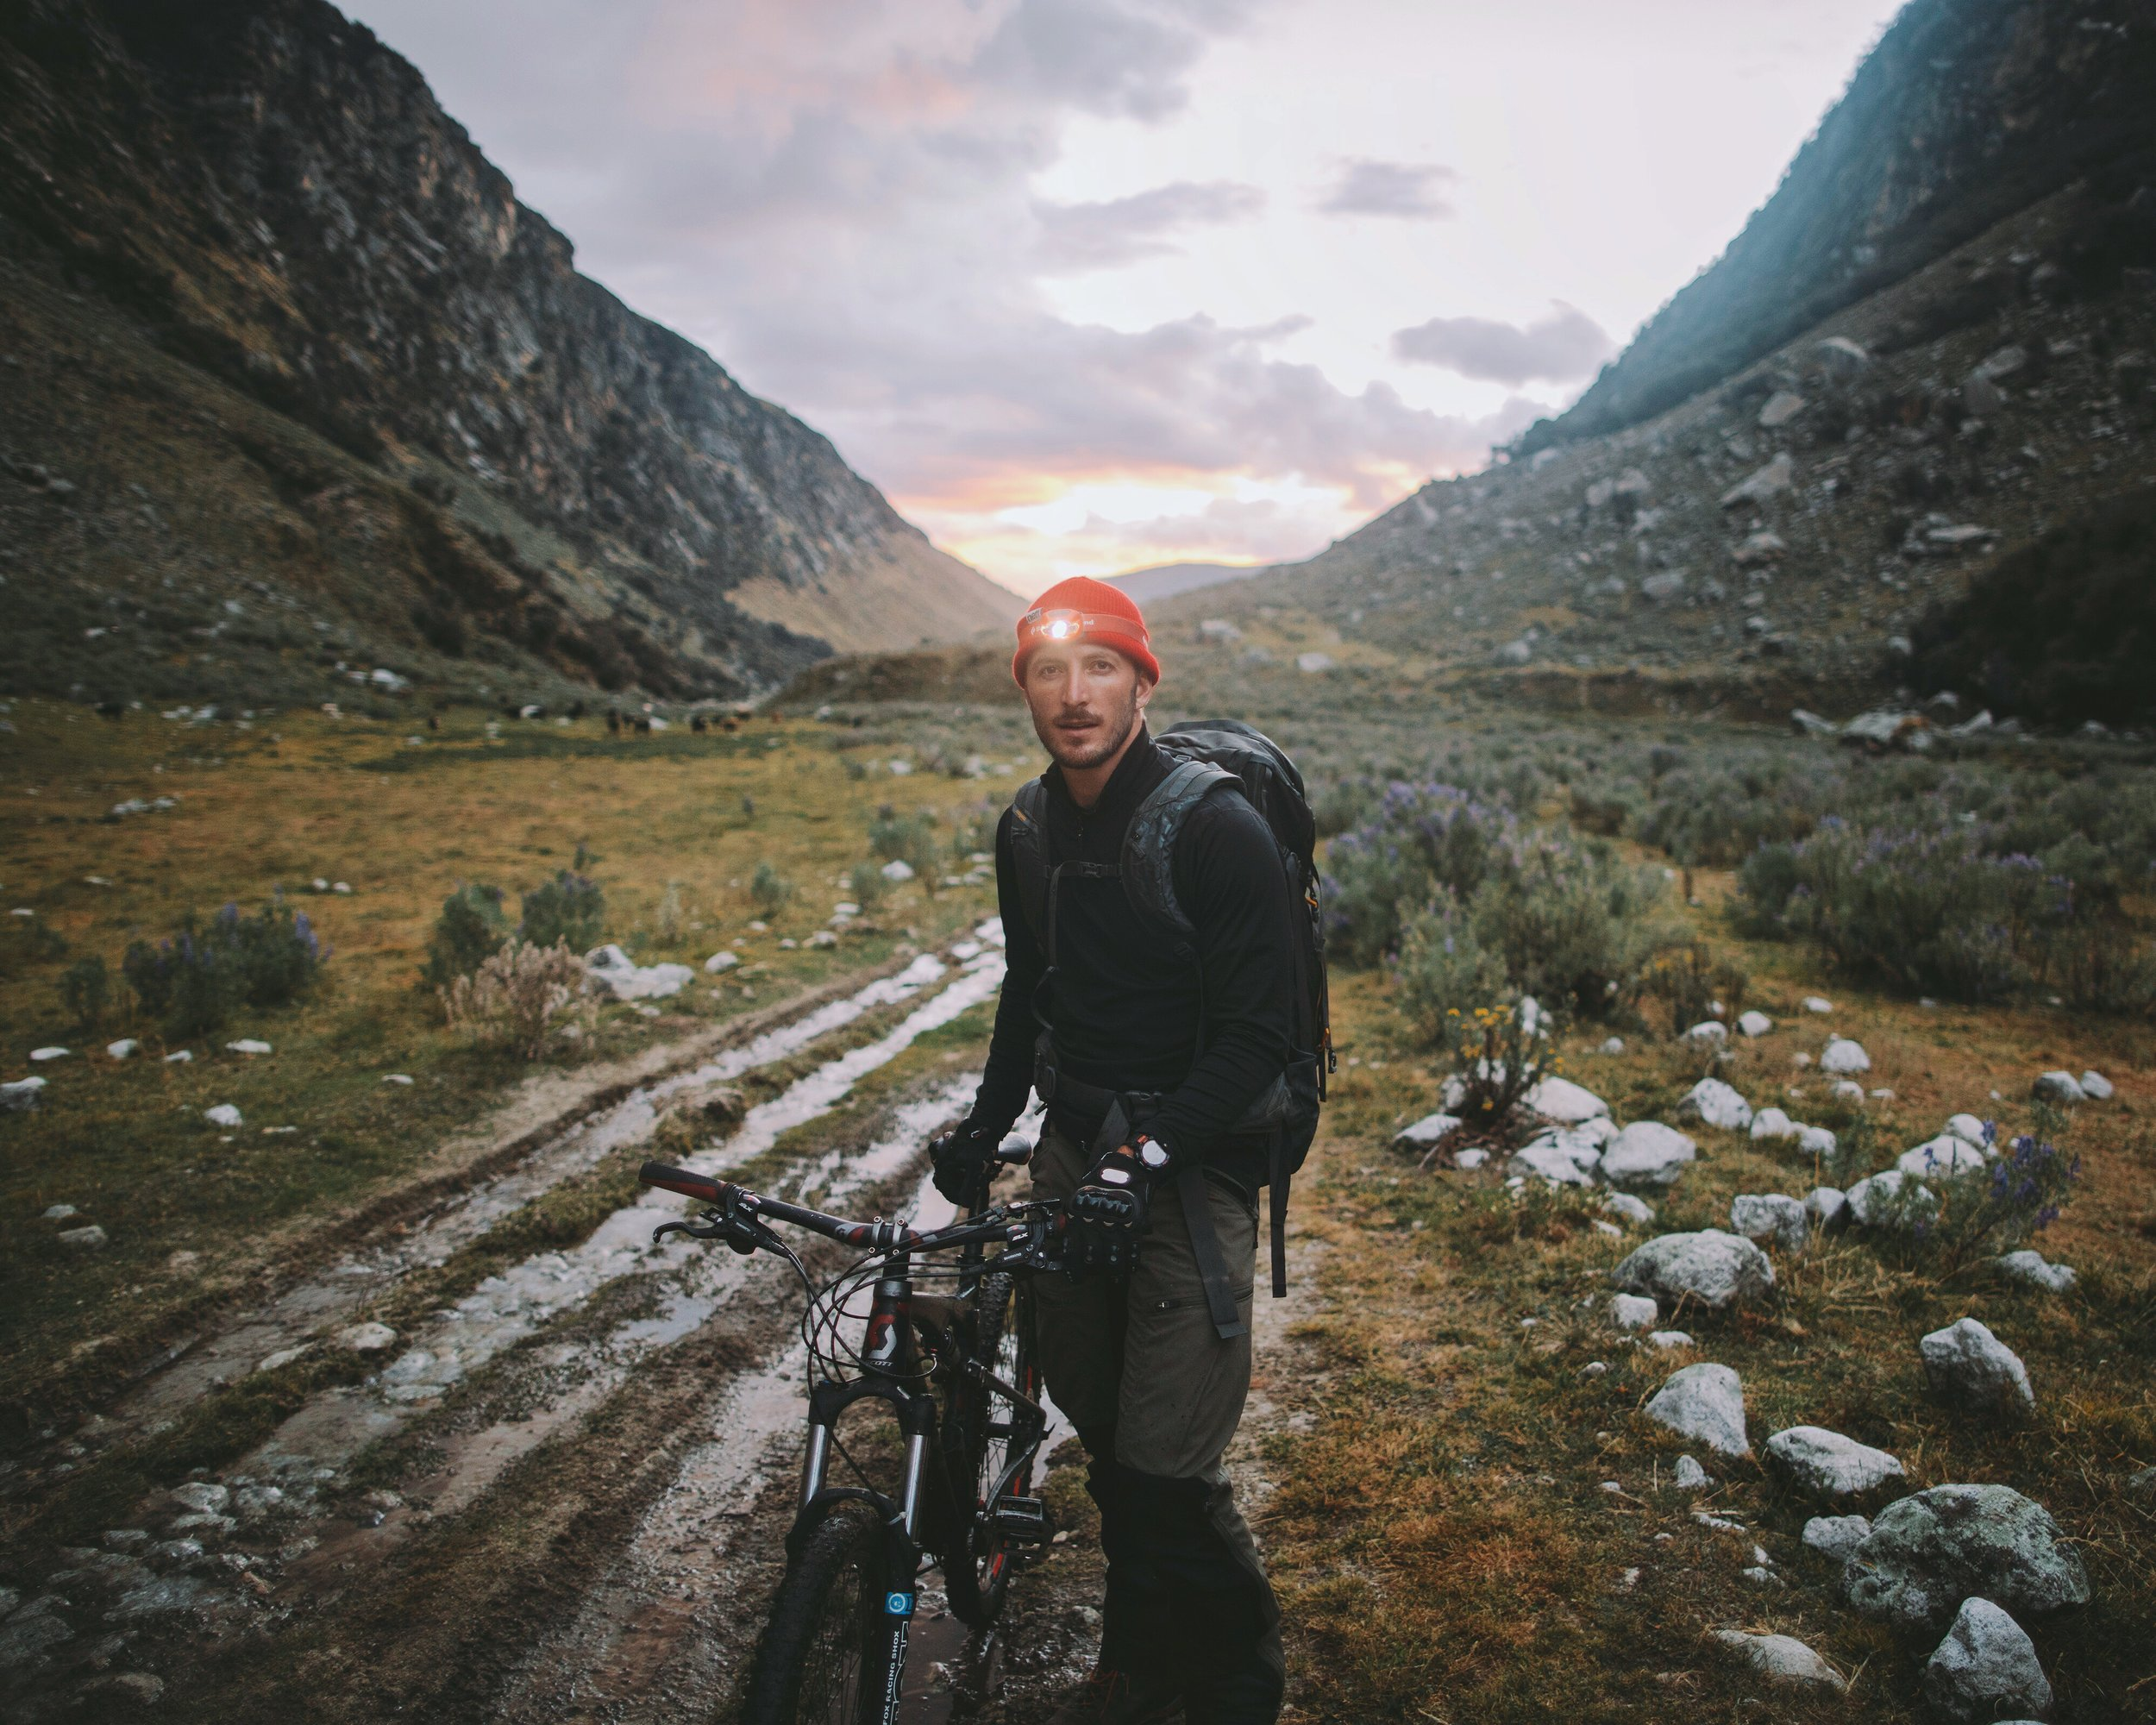 Isaac Johnston in the Peruvian Andes. Photo by Alex Strohl